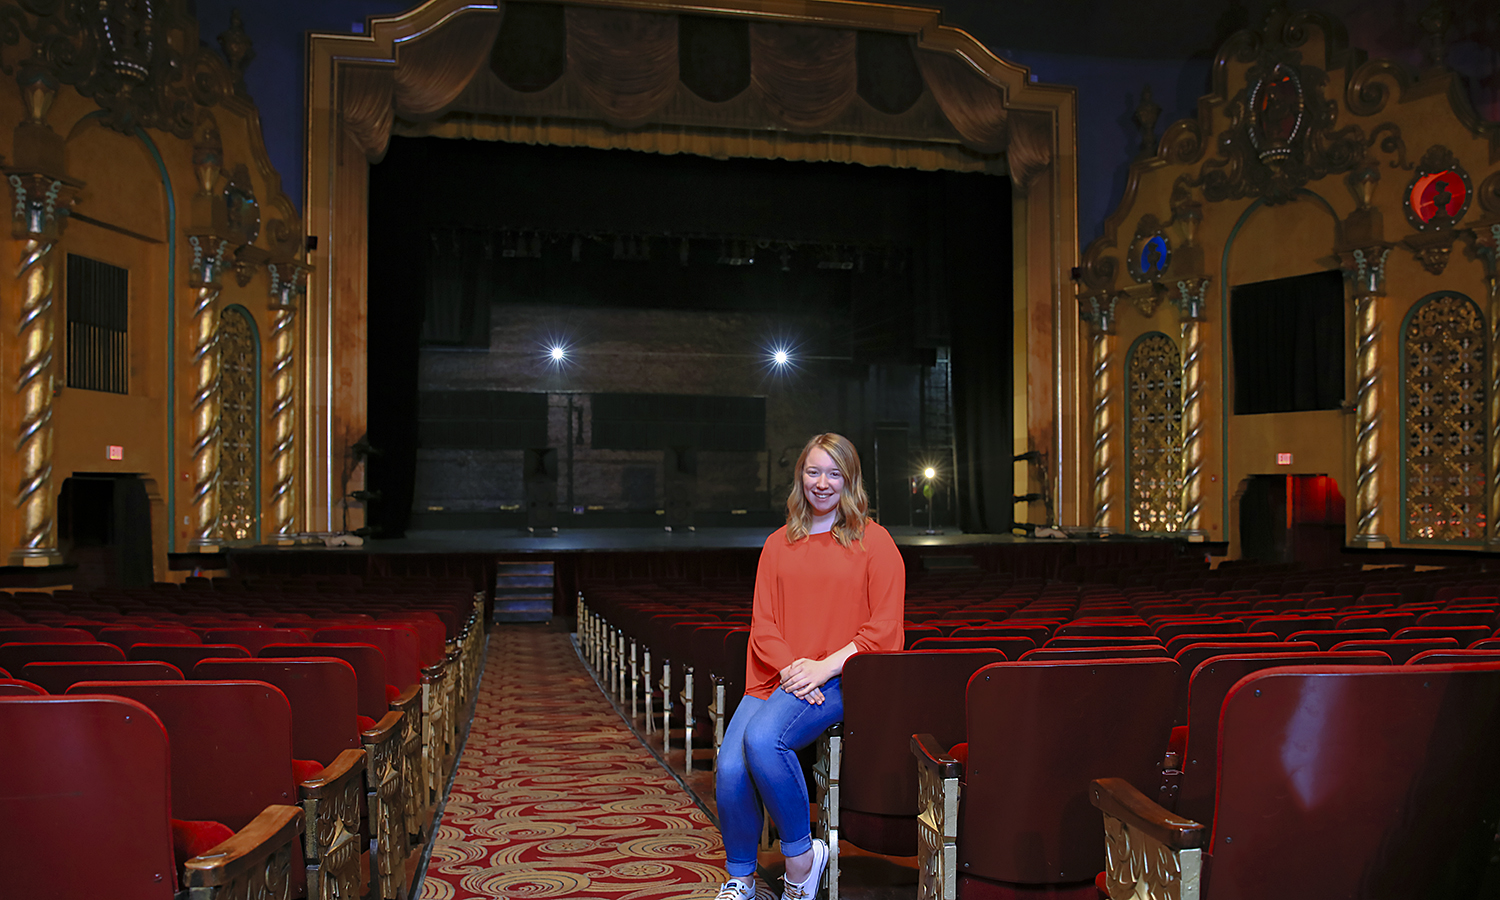 Isabella Siddall '21 interns with the Smith Opera House for the Performing Arts in downtown Geneva. This summer, Siddall will assist with customer relations, plan events and conduct operations for the venue.